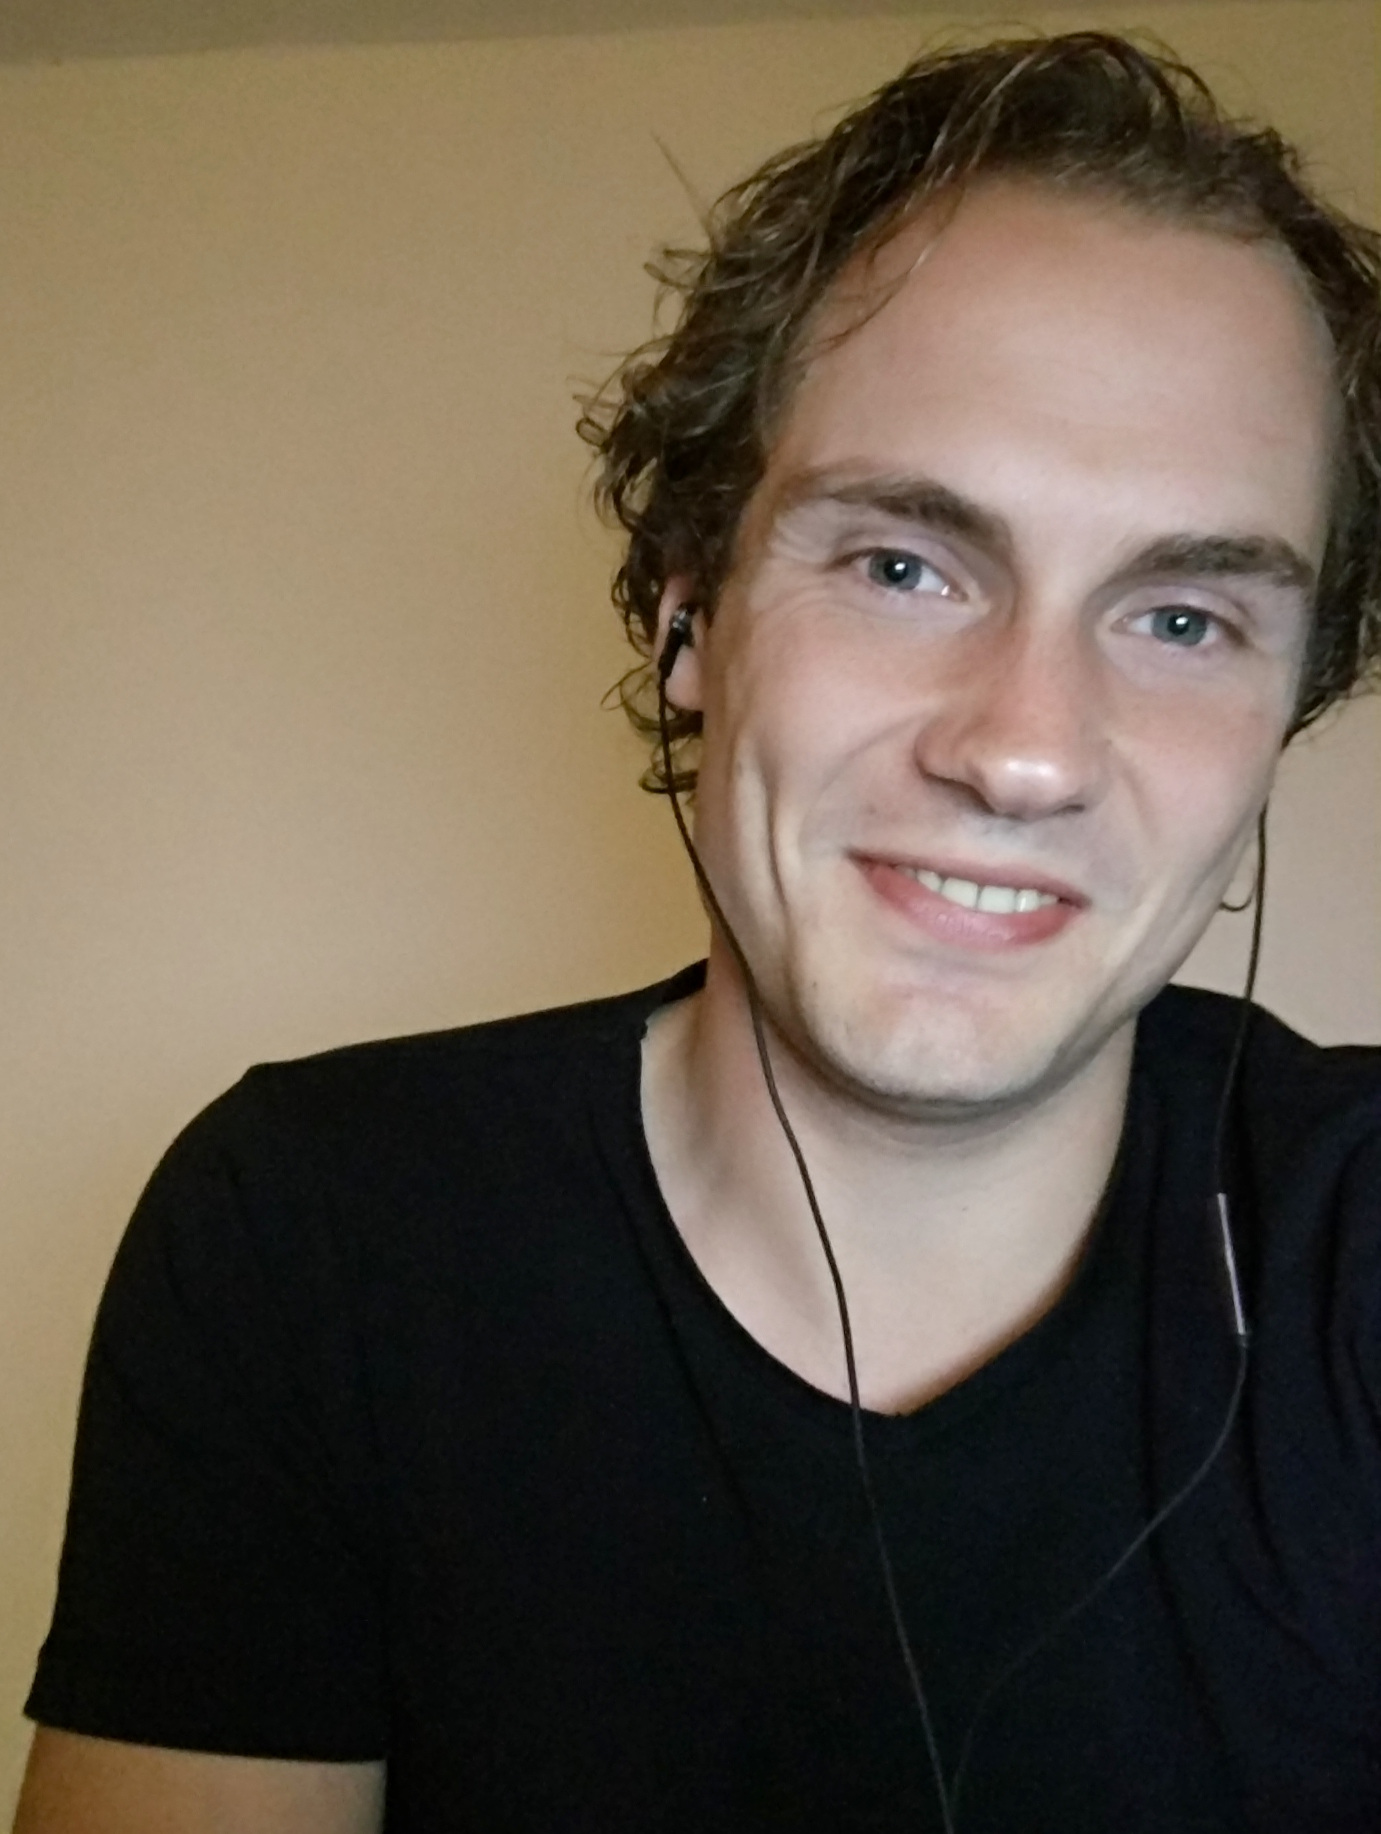 CARLO MEIJER    Carlo is a PhD candidate at the Digital security group at the Radboud University Nijmegen. His research focuses on analysis of already-deployed cryptographic systems in the wild.  View profile